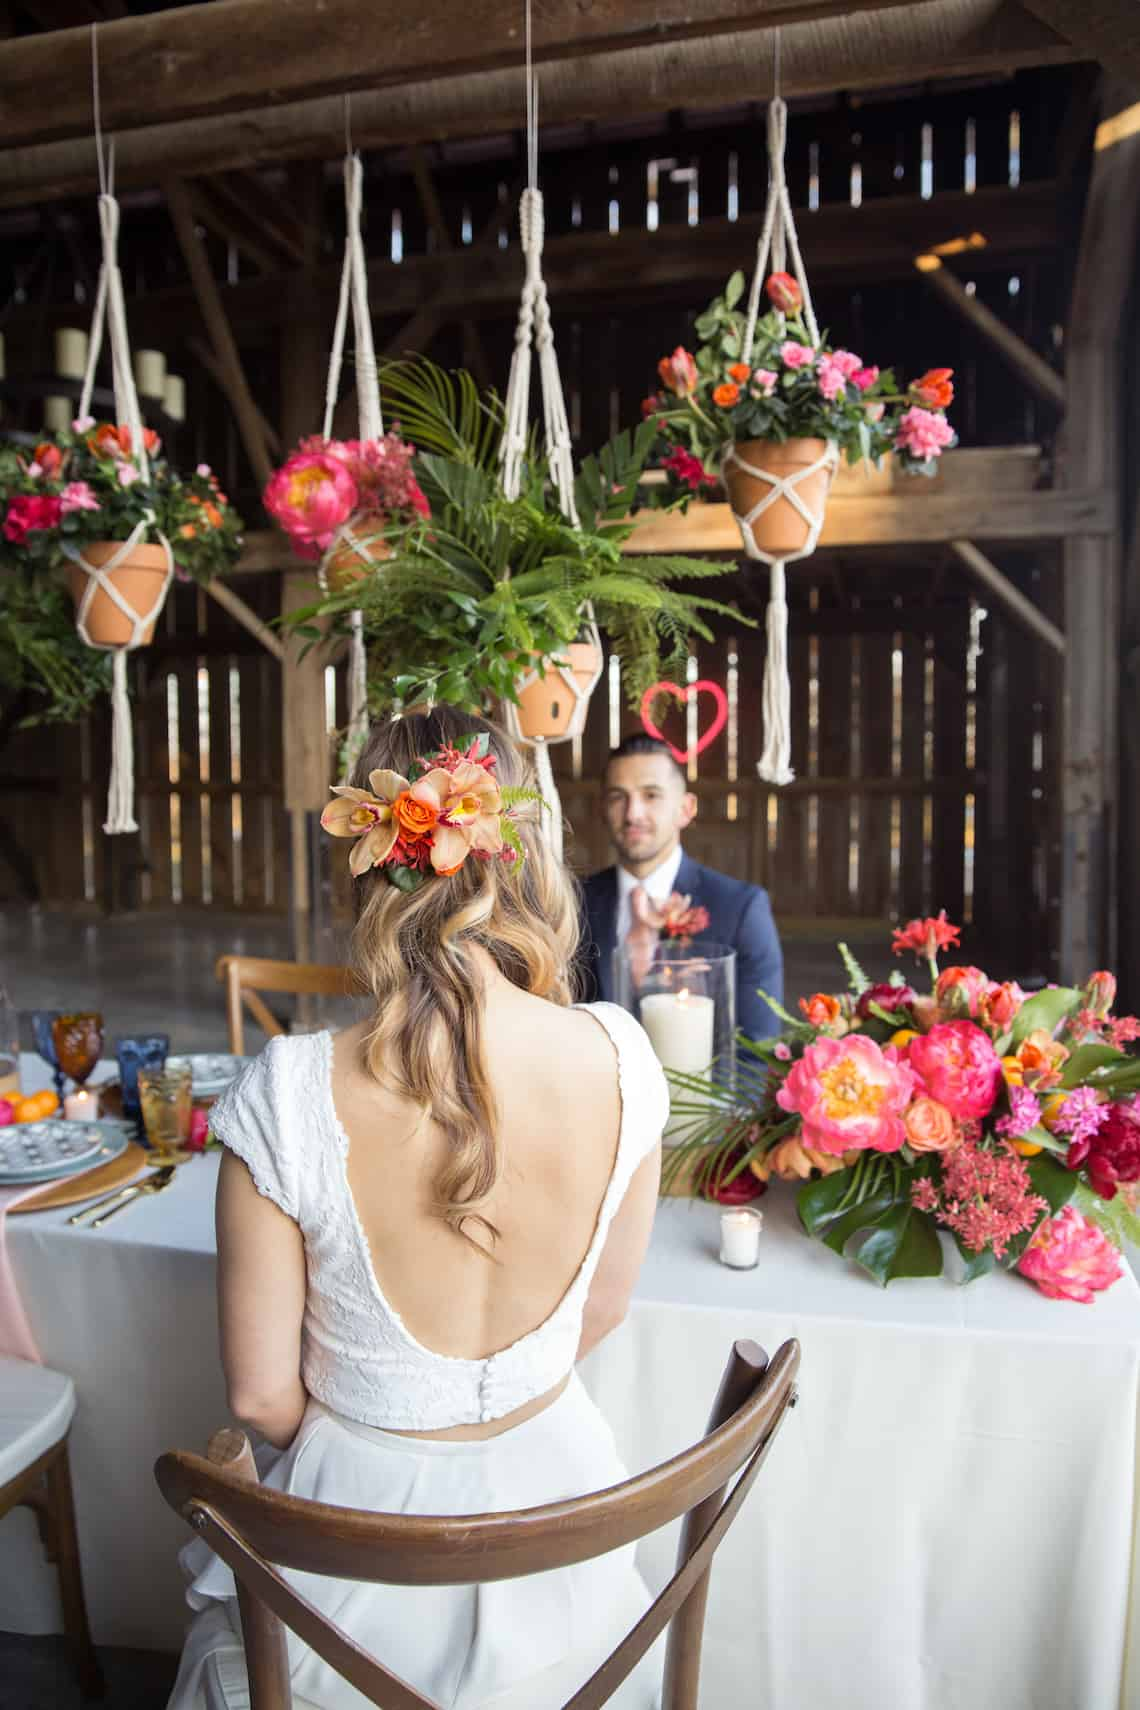 Floral Hairpiece for Bride Sitting Across Table from Groom